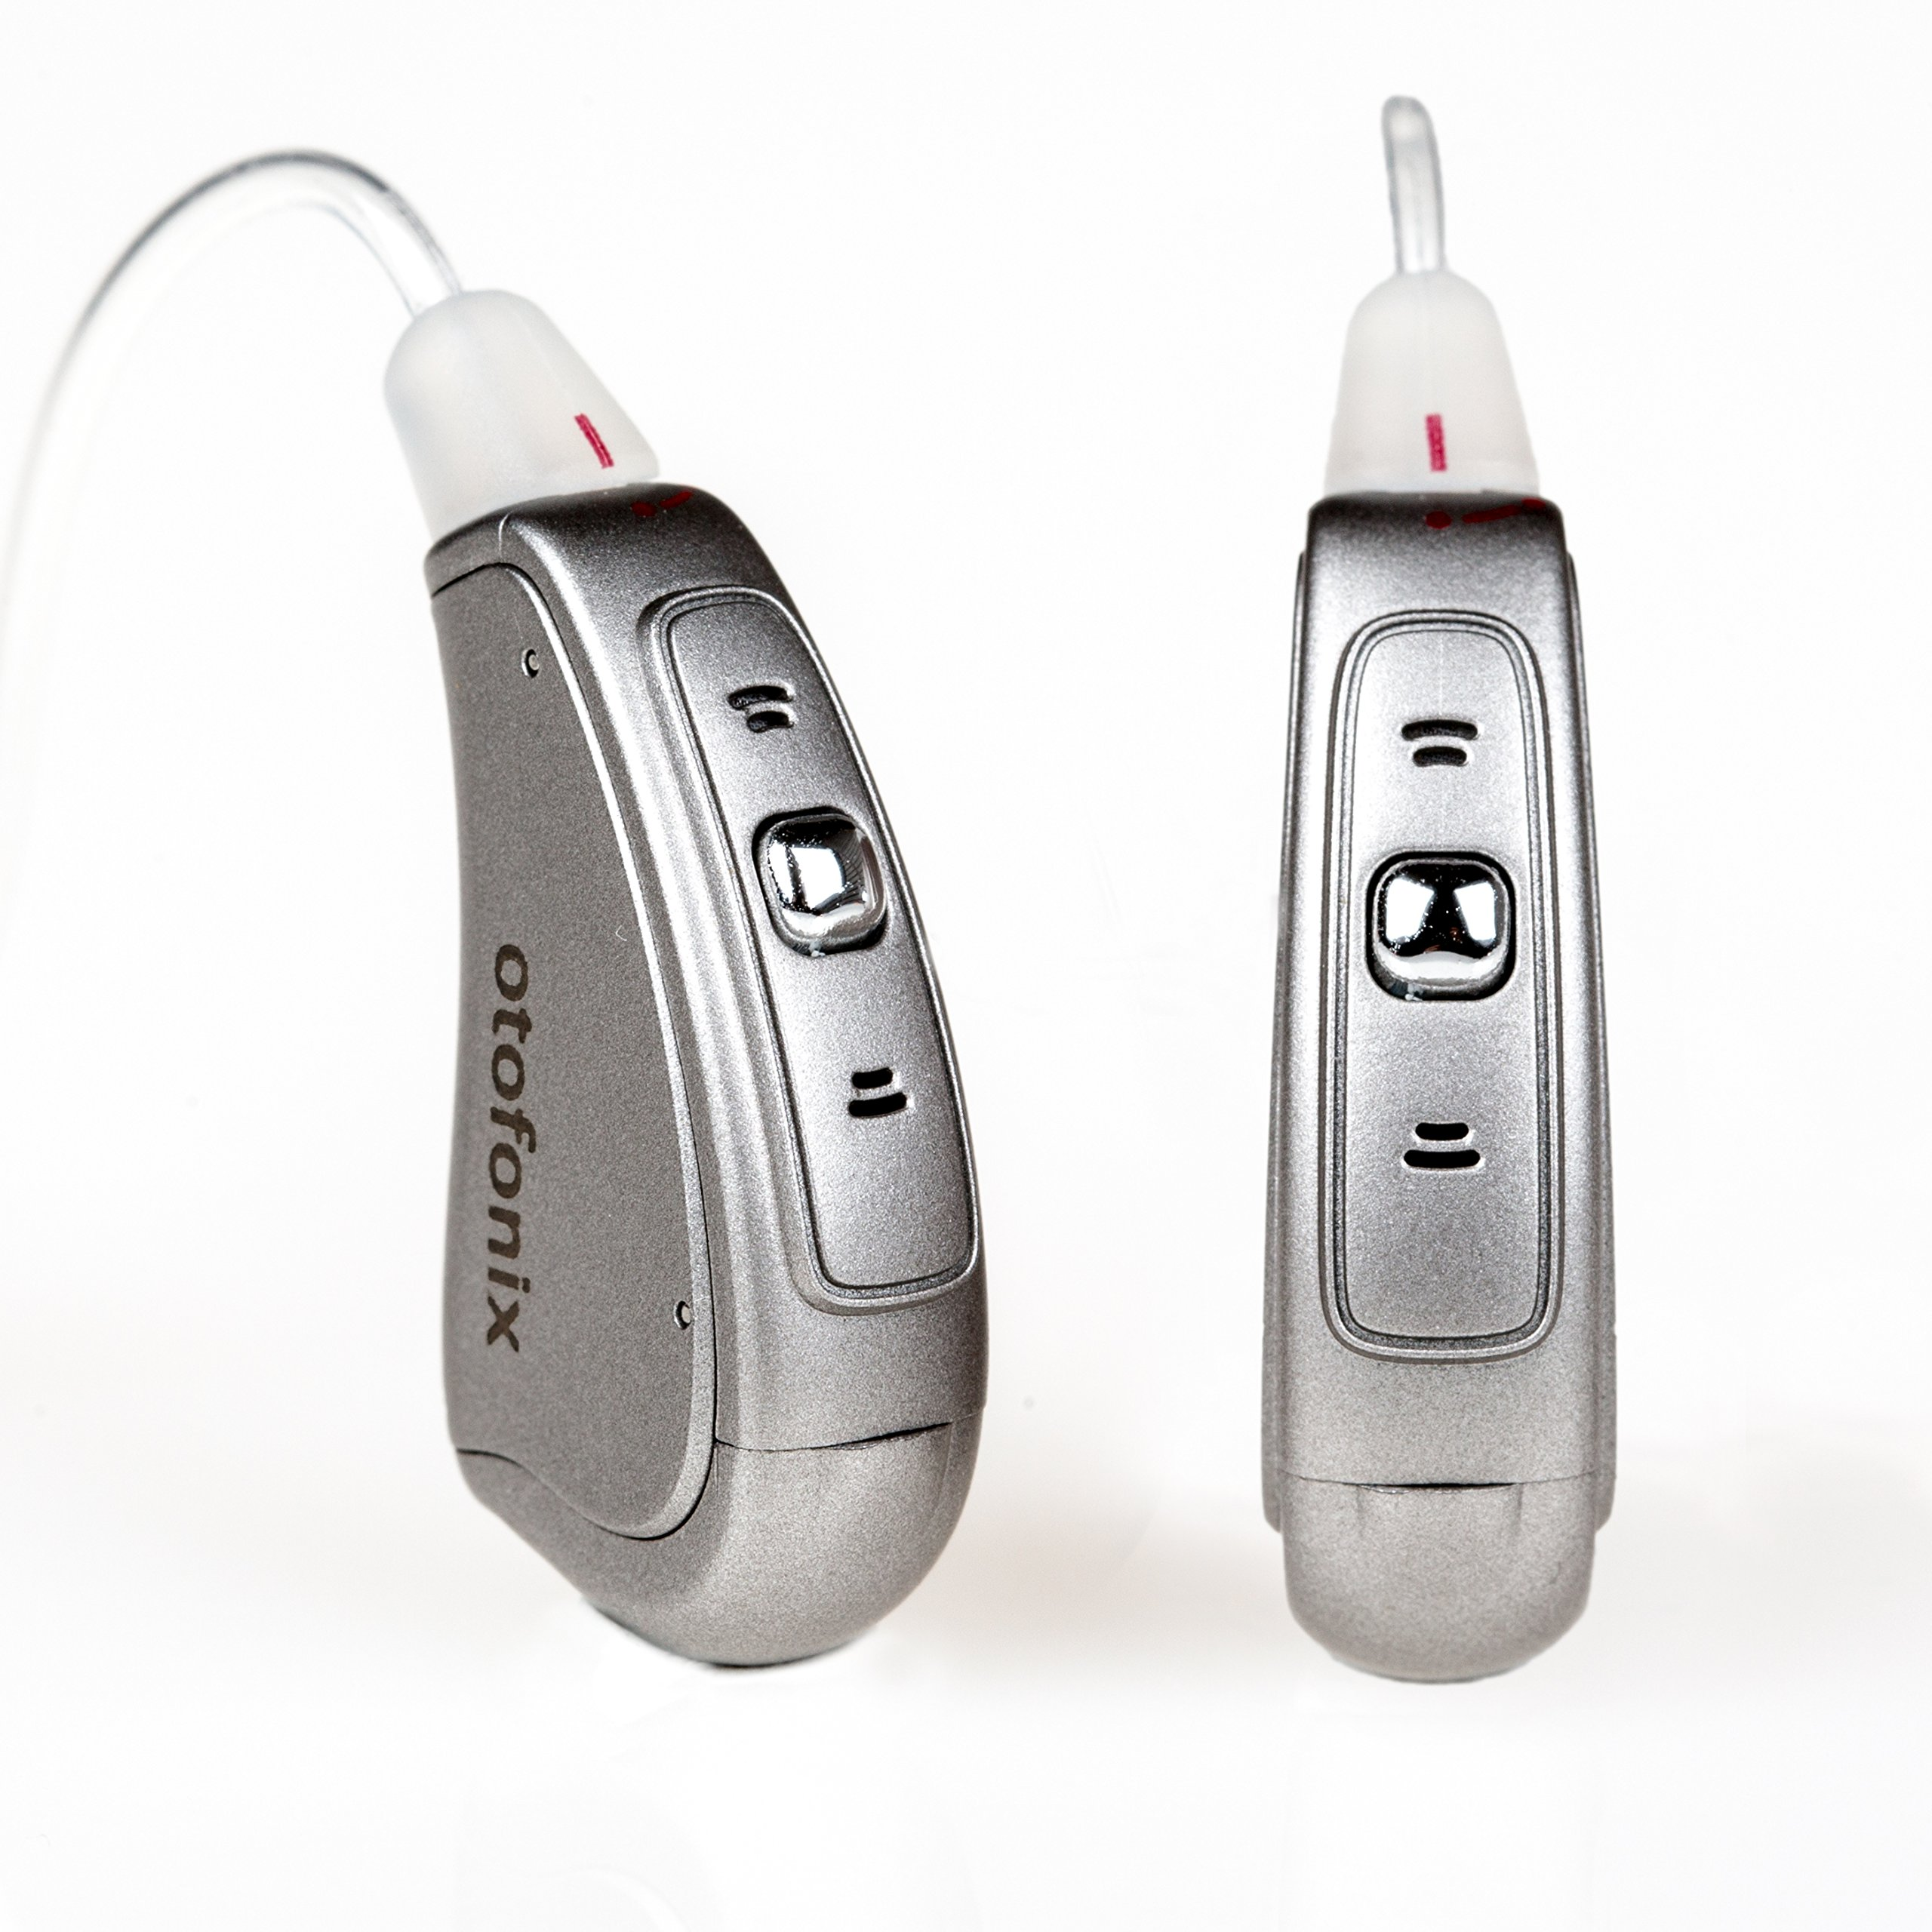 Otofonix Apex Mini Digital Hearing Amplifier to Assist and Aid Hearing for Adults (Pair, Gray)